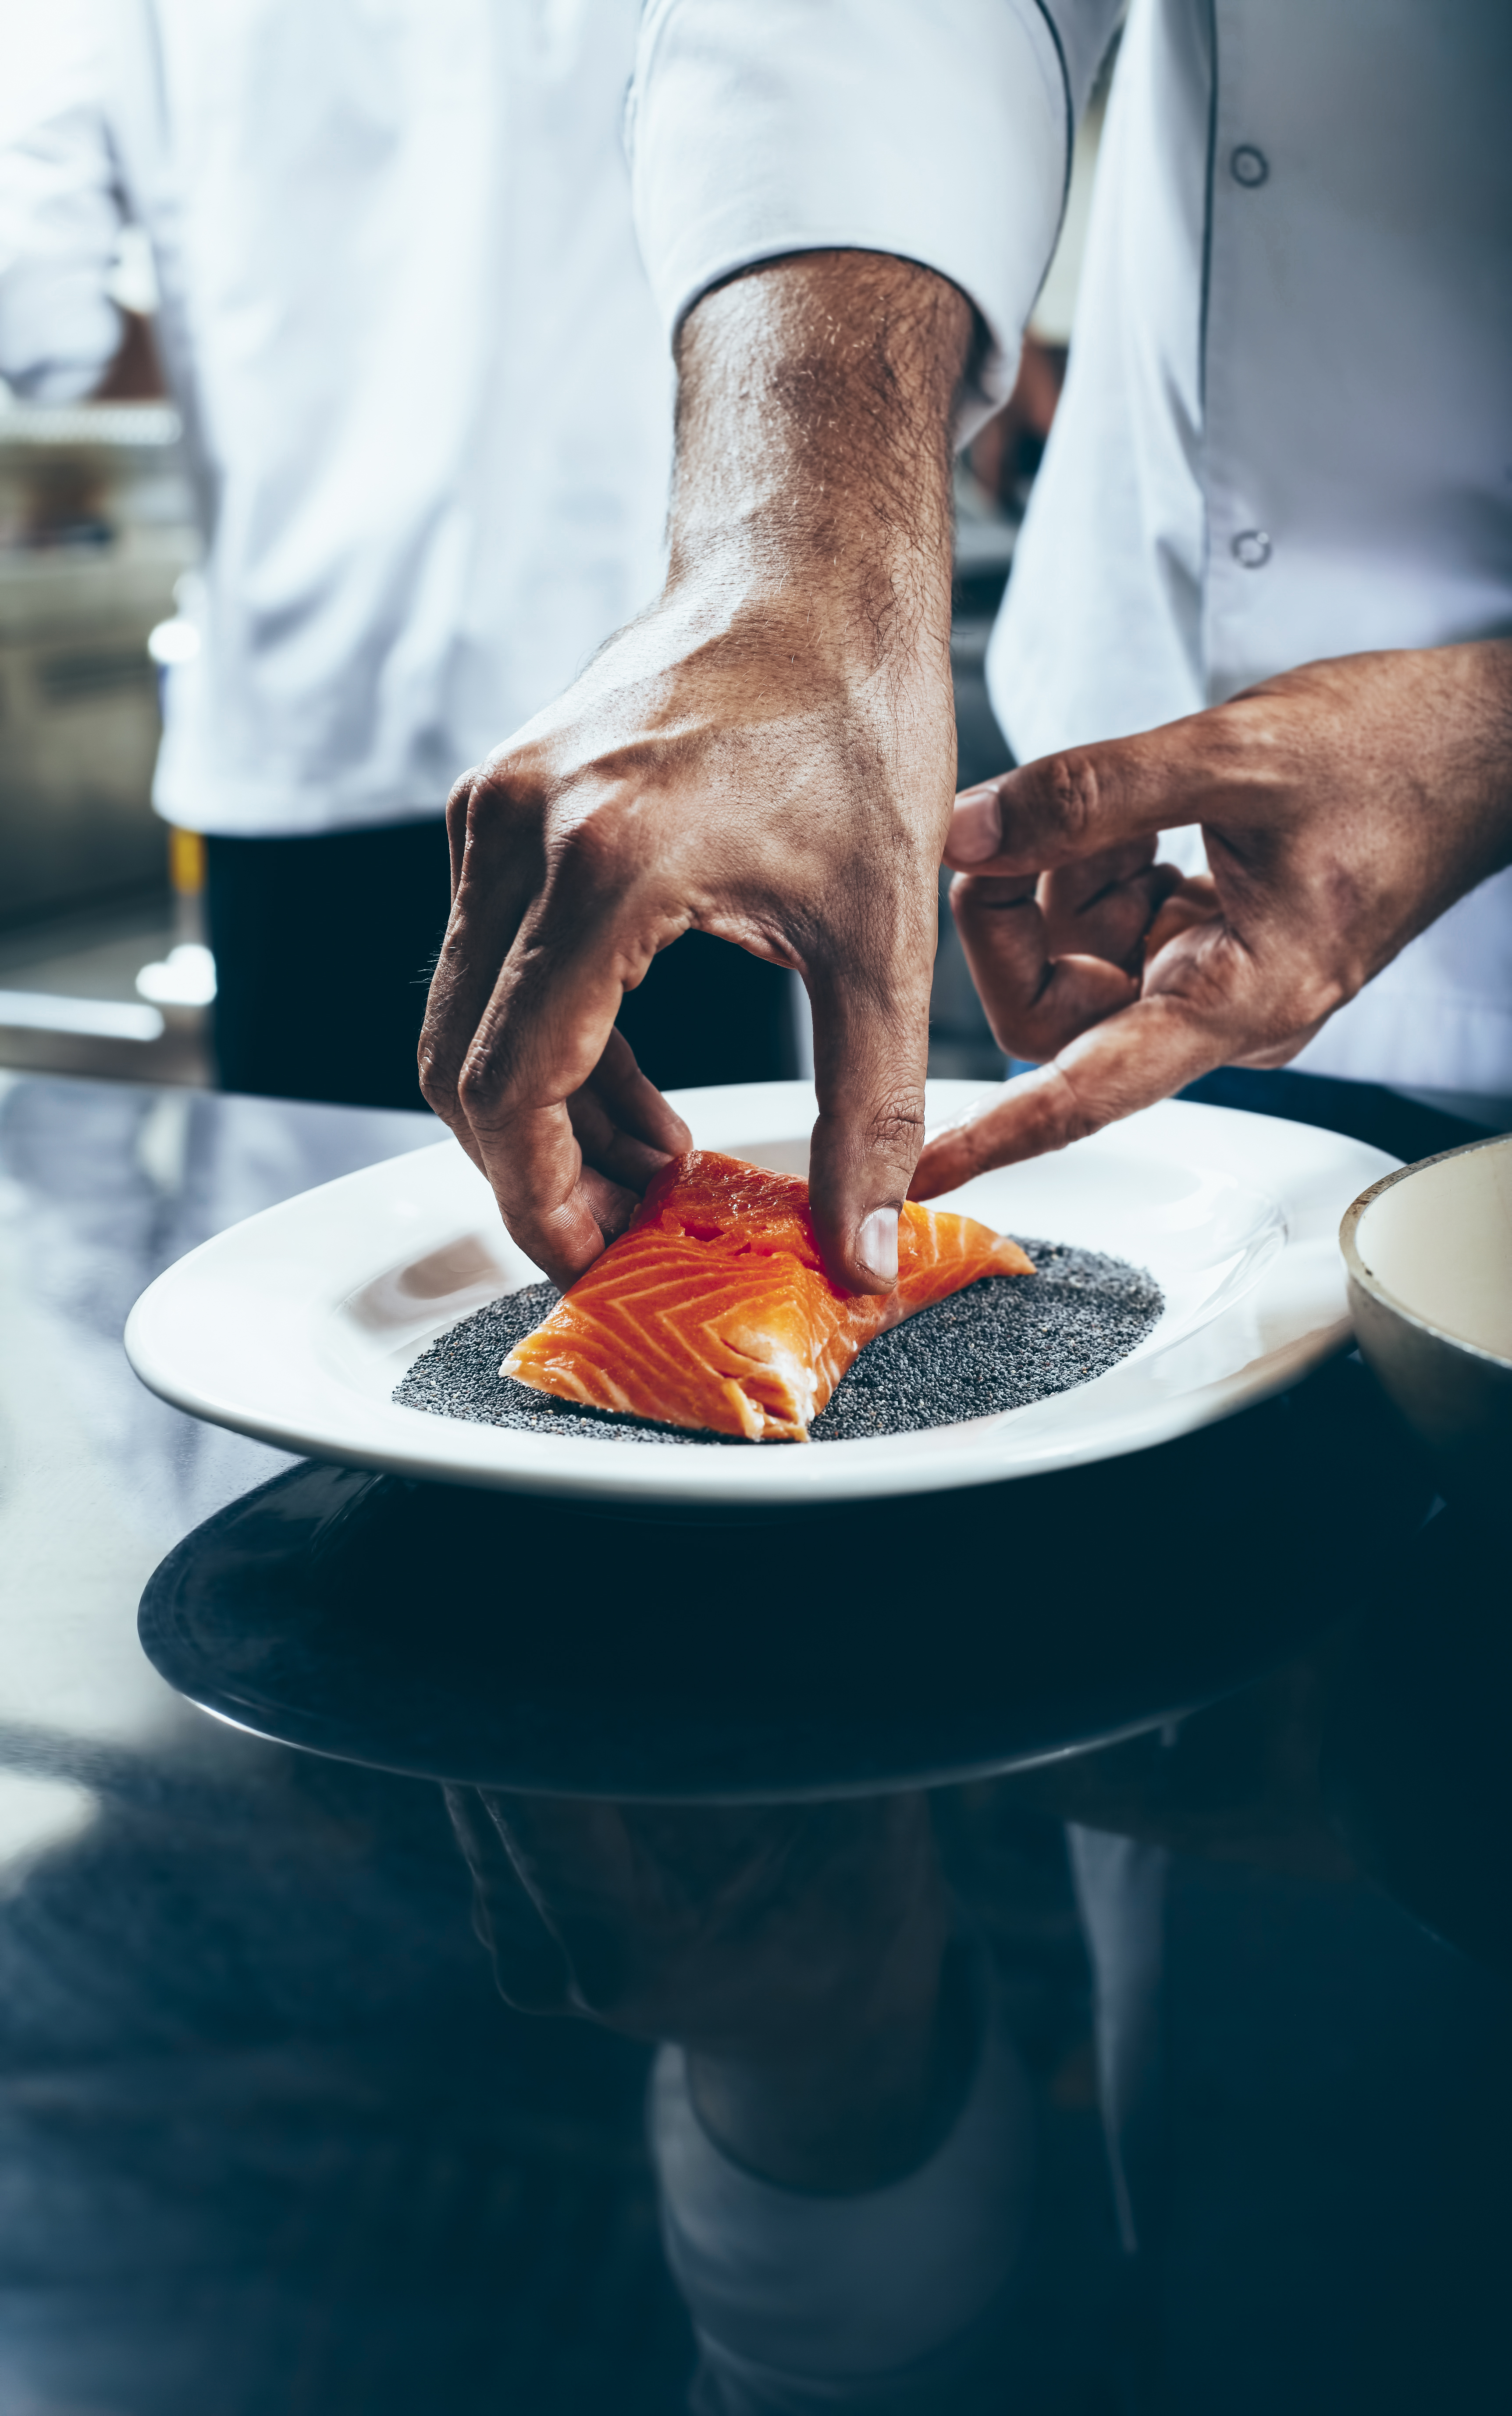 Chef dips salmon fillet on poppy seeds.A caucasian chef holding salmon fillet with two hands.Only hands of chef is visible.There is another chef working at the back.Underside of the image is blank.